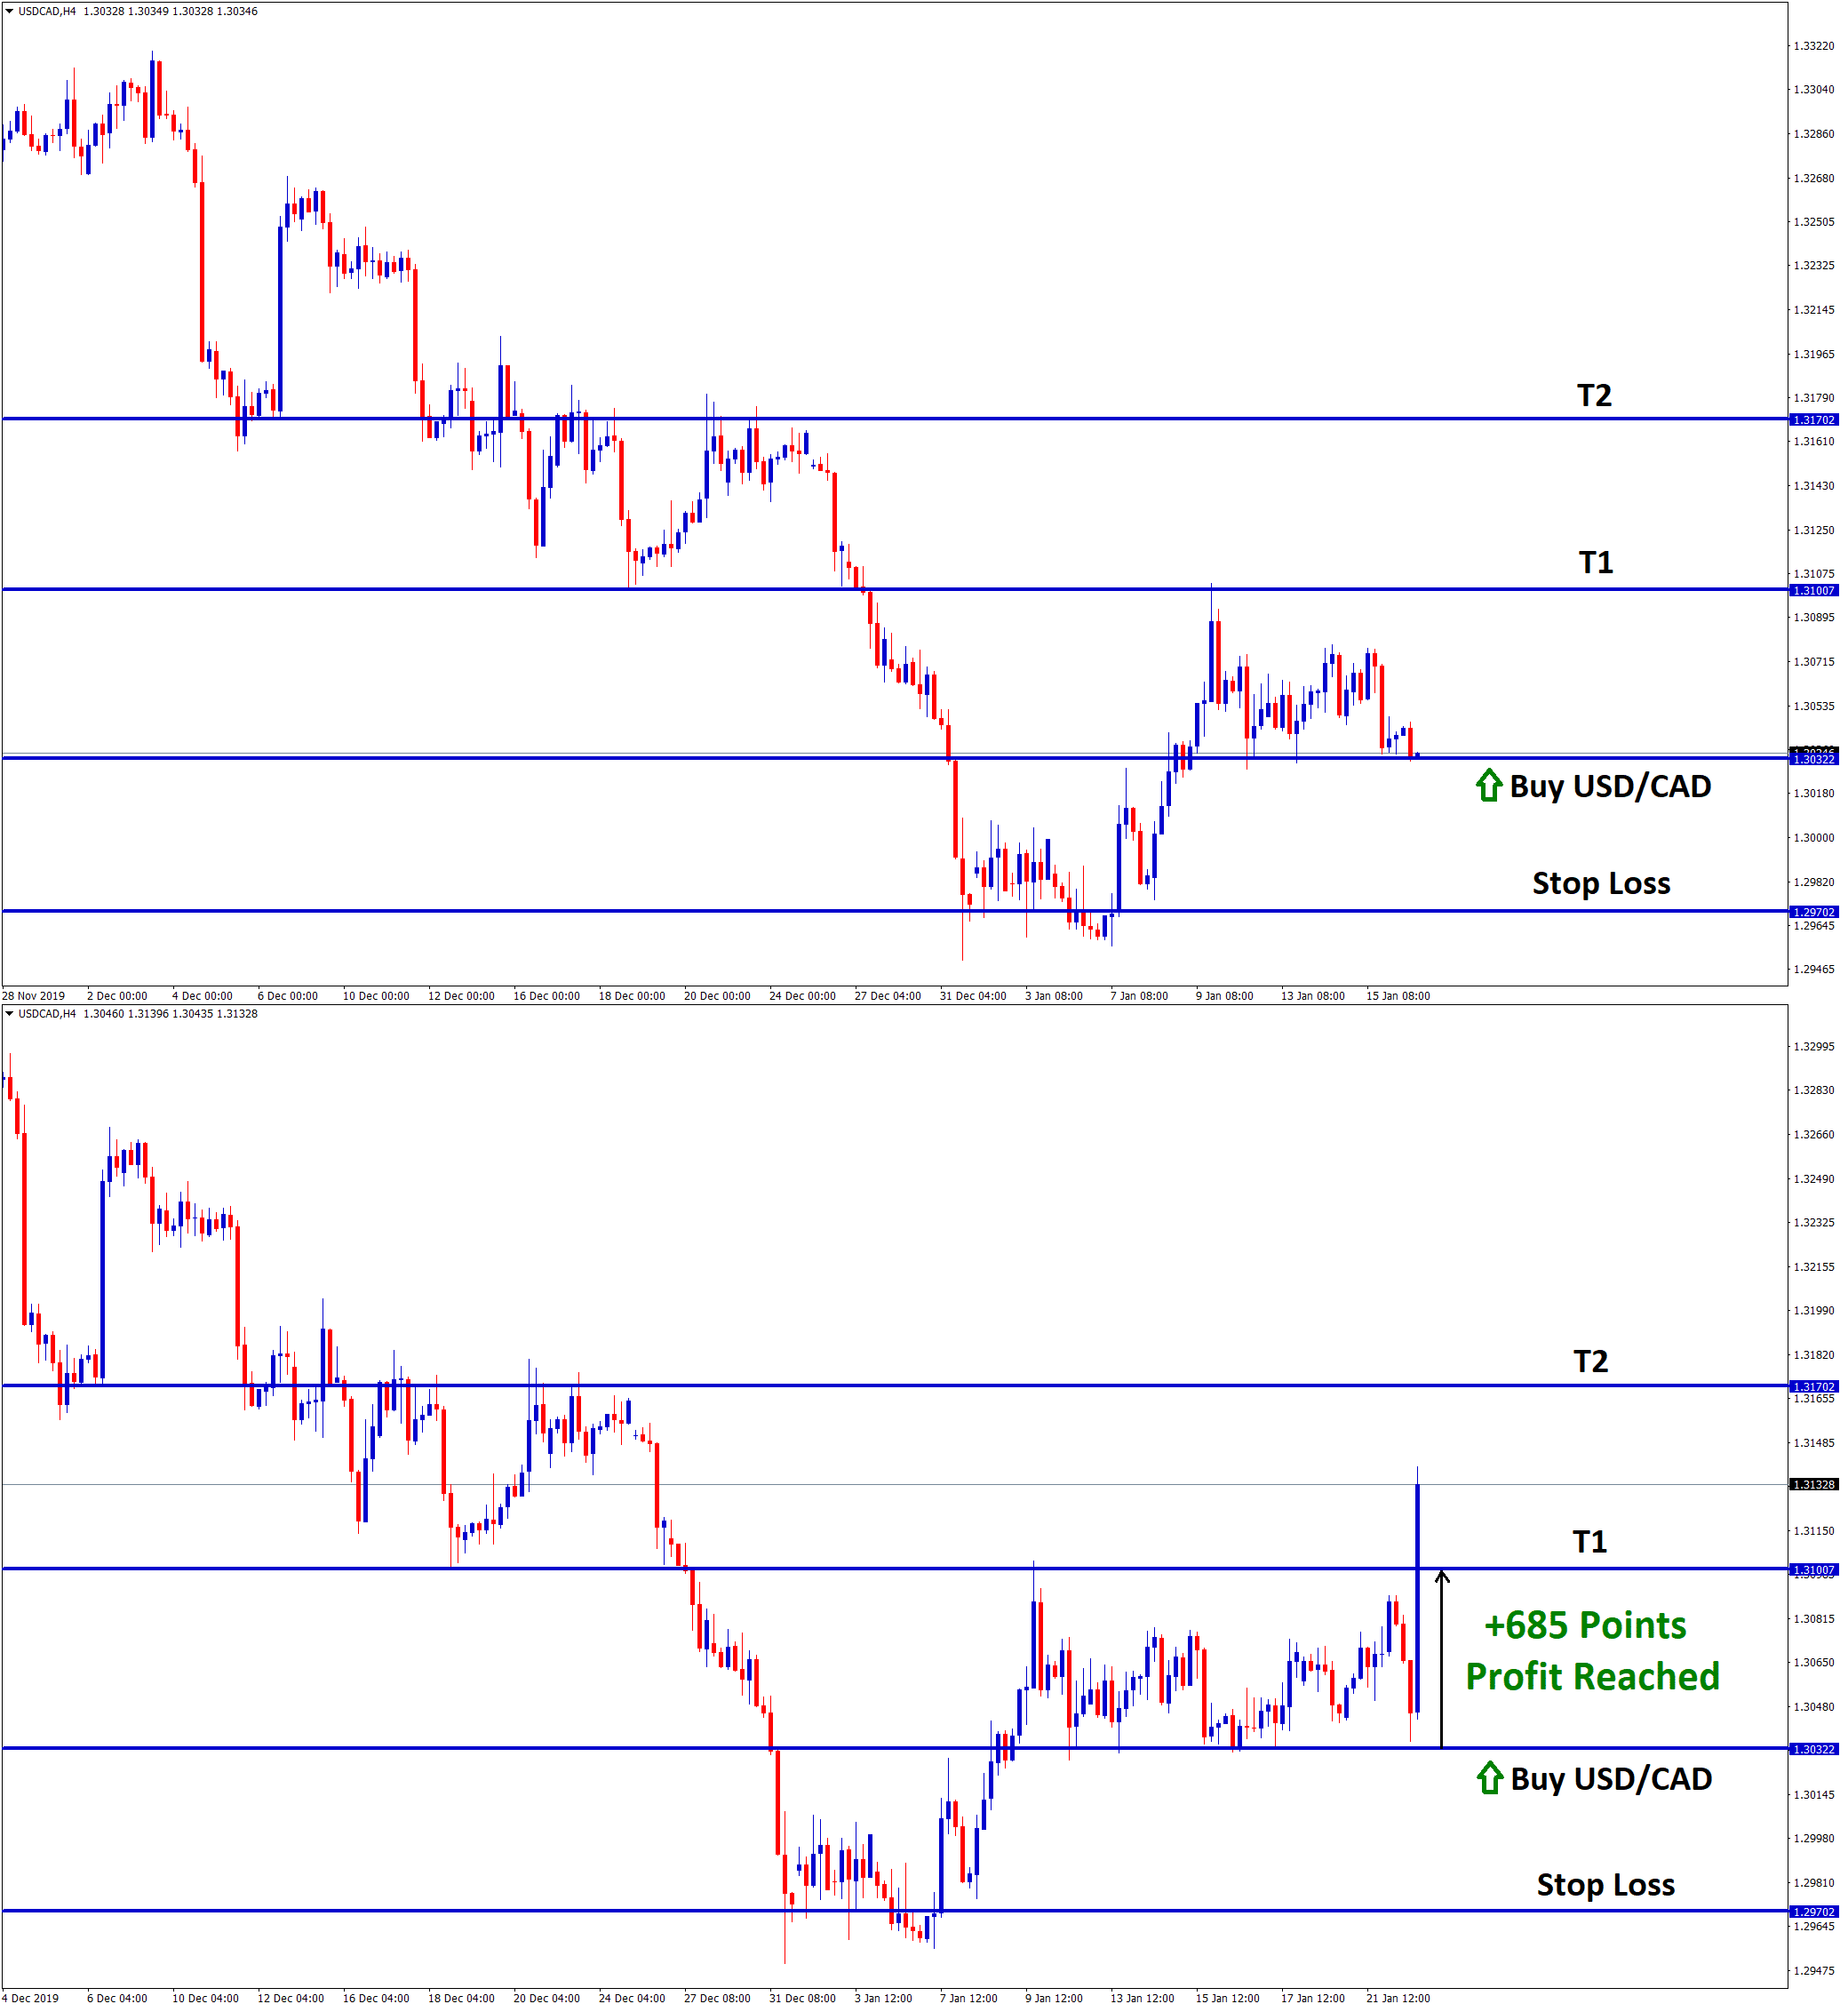 take profit reached in usd cad buy signal